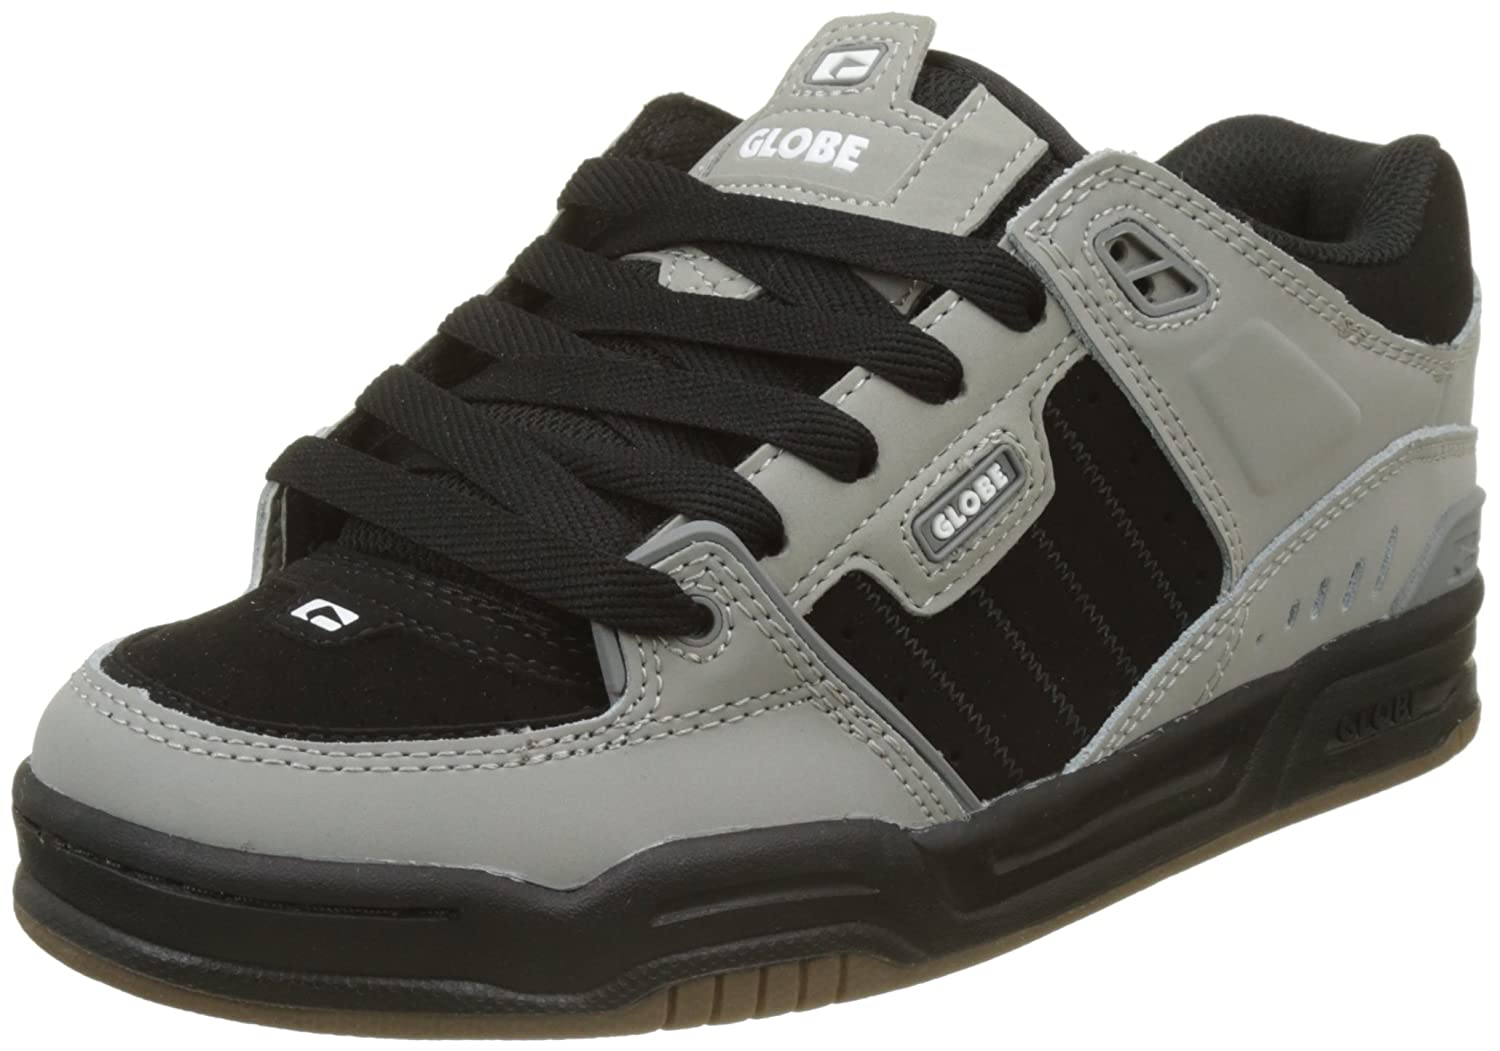 Globe pour homme Scribe Skateboarding Chaussures - - Gris/noir/blanc,